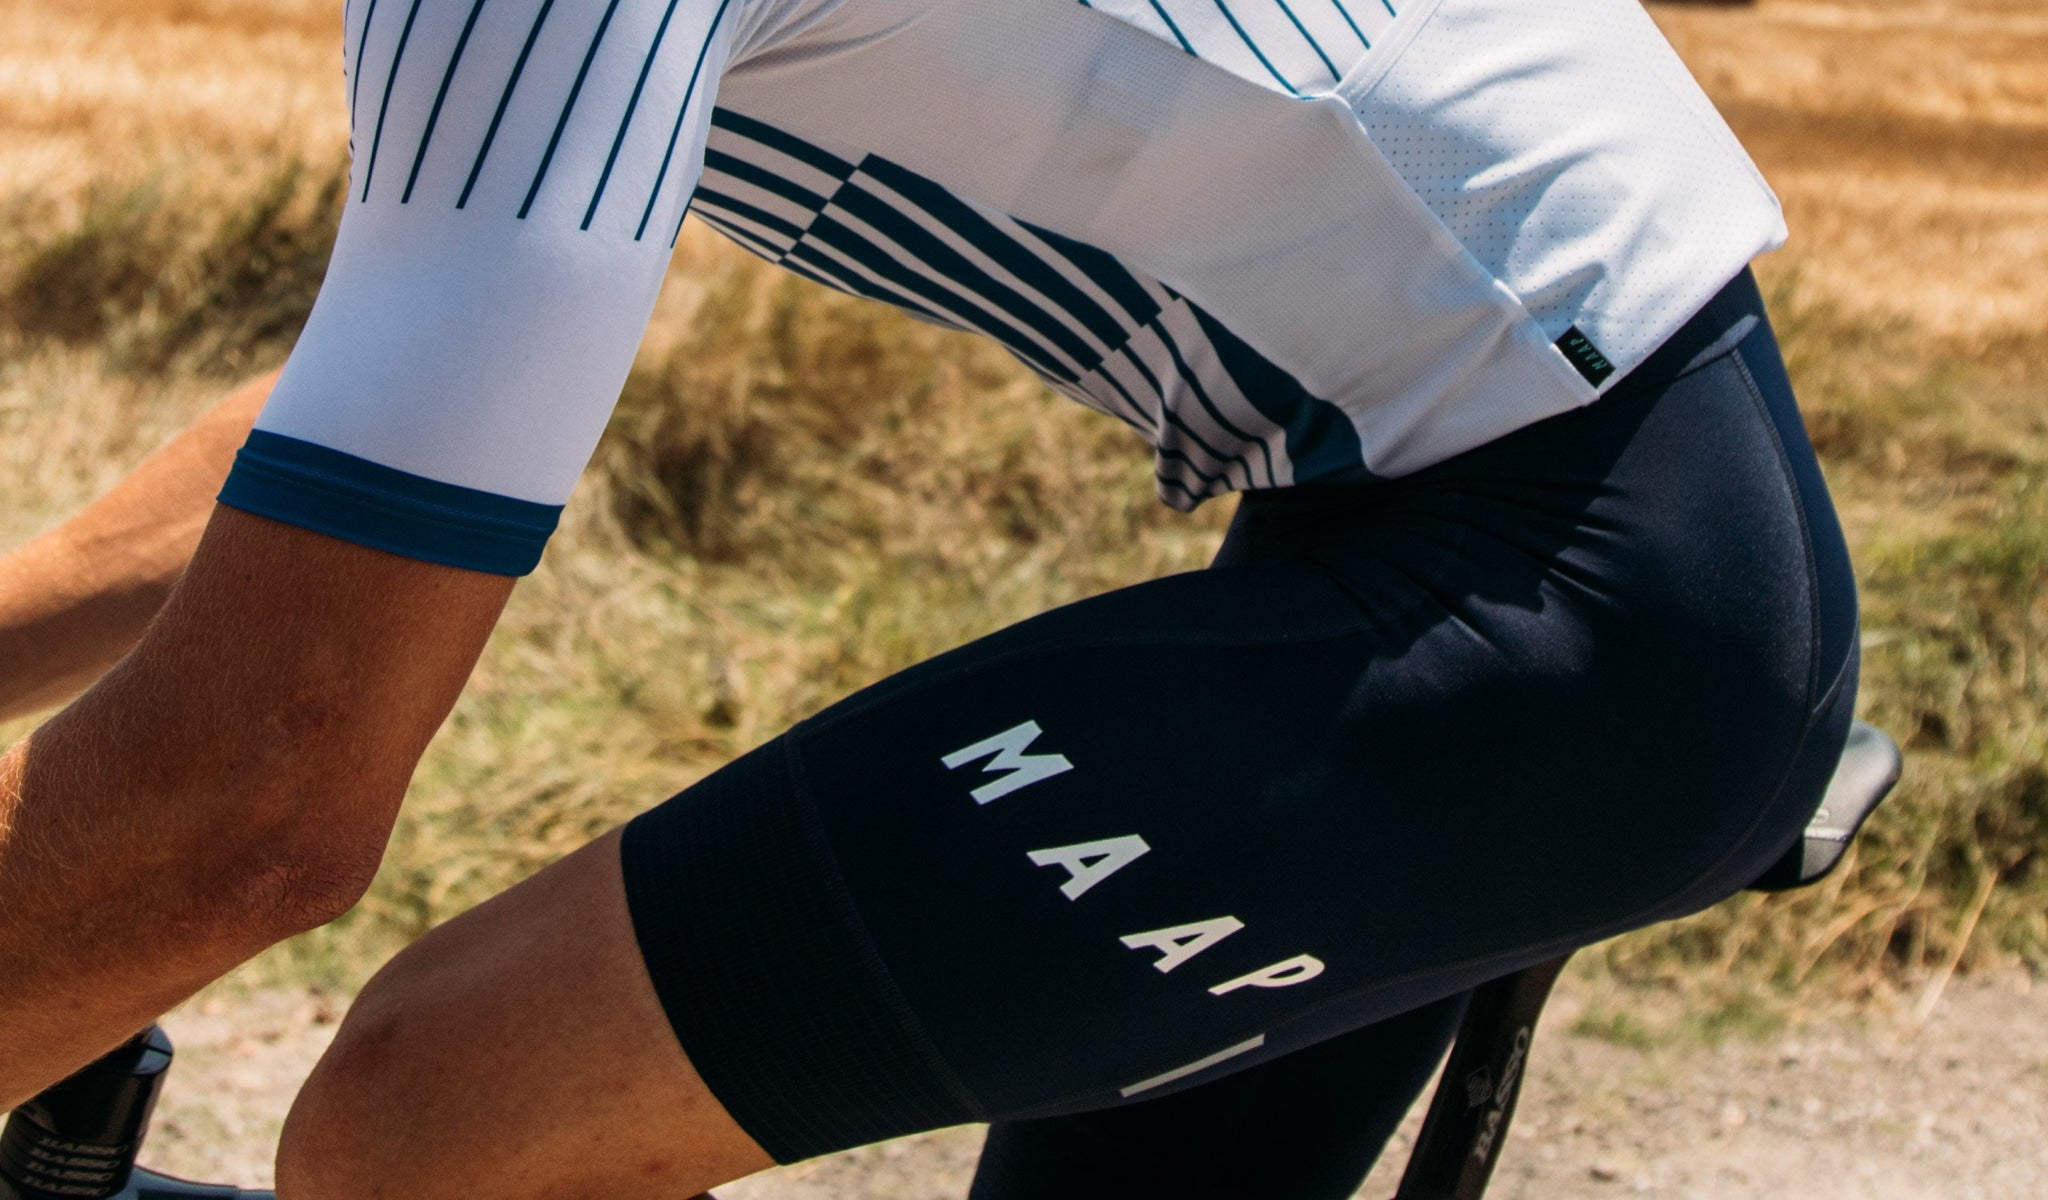 MAAP Team Cycling Bib Shorts 3.0 in Navy for riding in warm weather conditions.